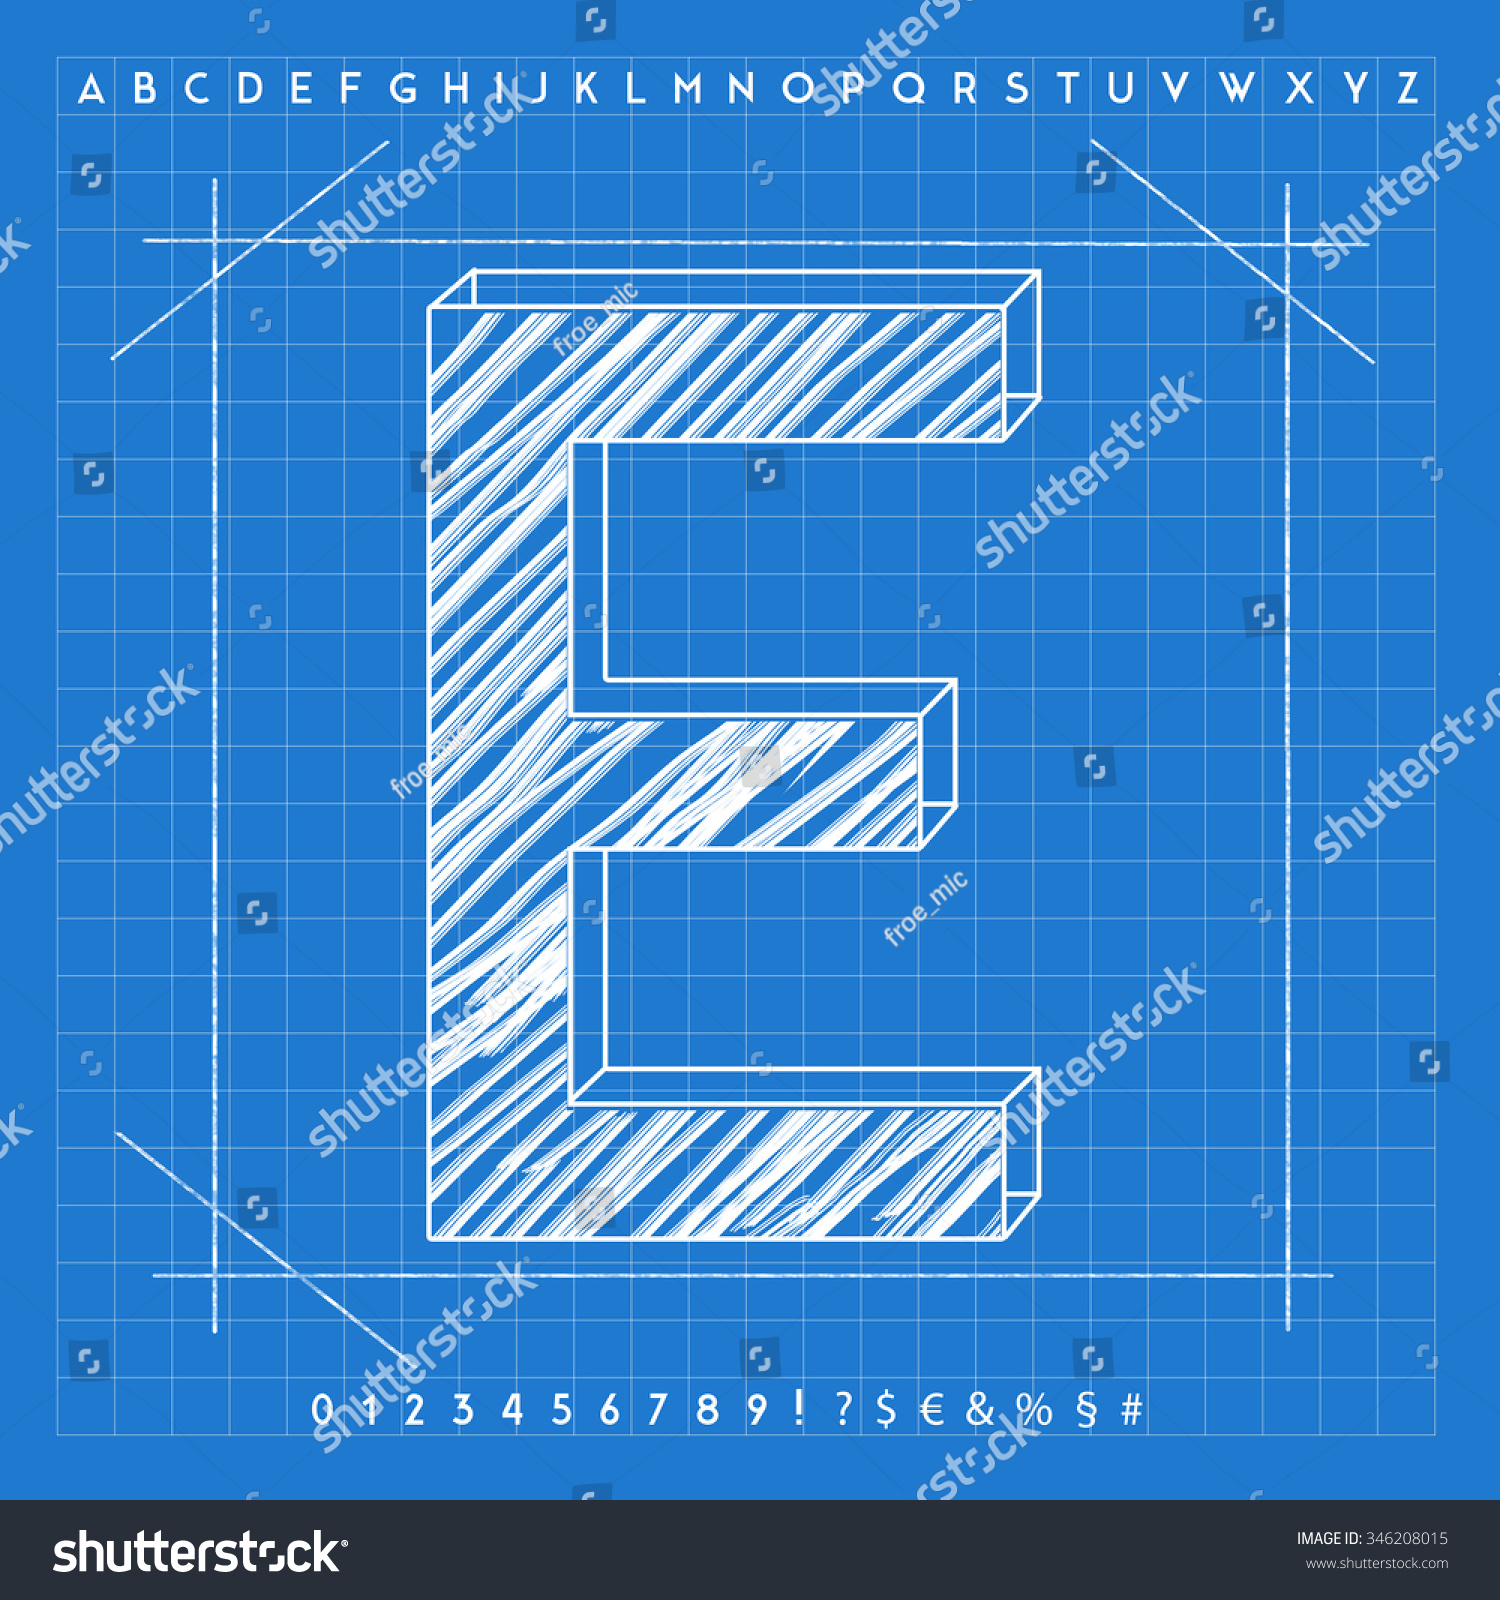 High quality 3 d blueprint font letter stock illustration 346208015 high quality 3d blueprint font letter e malvernweather Gallery